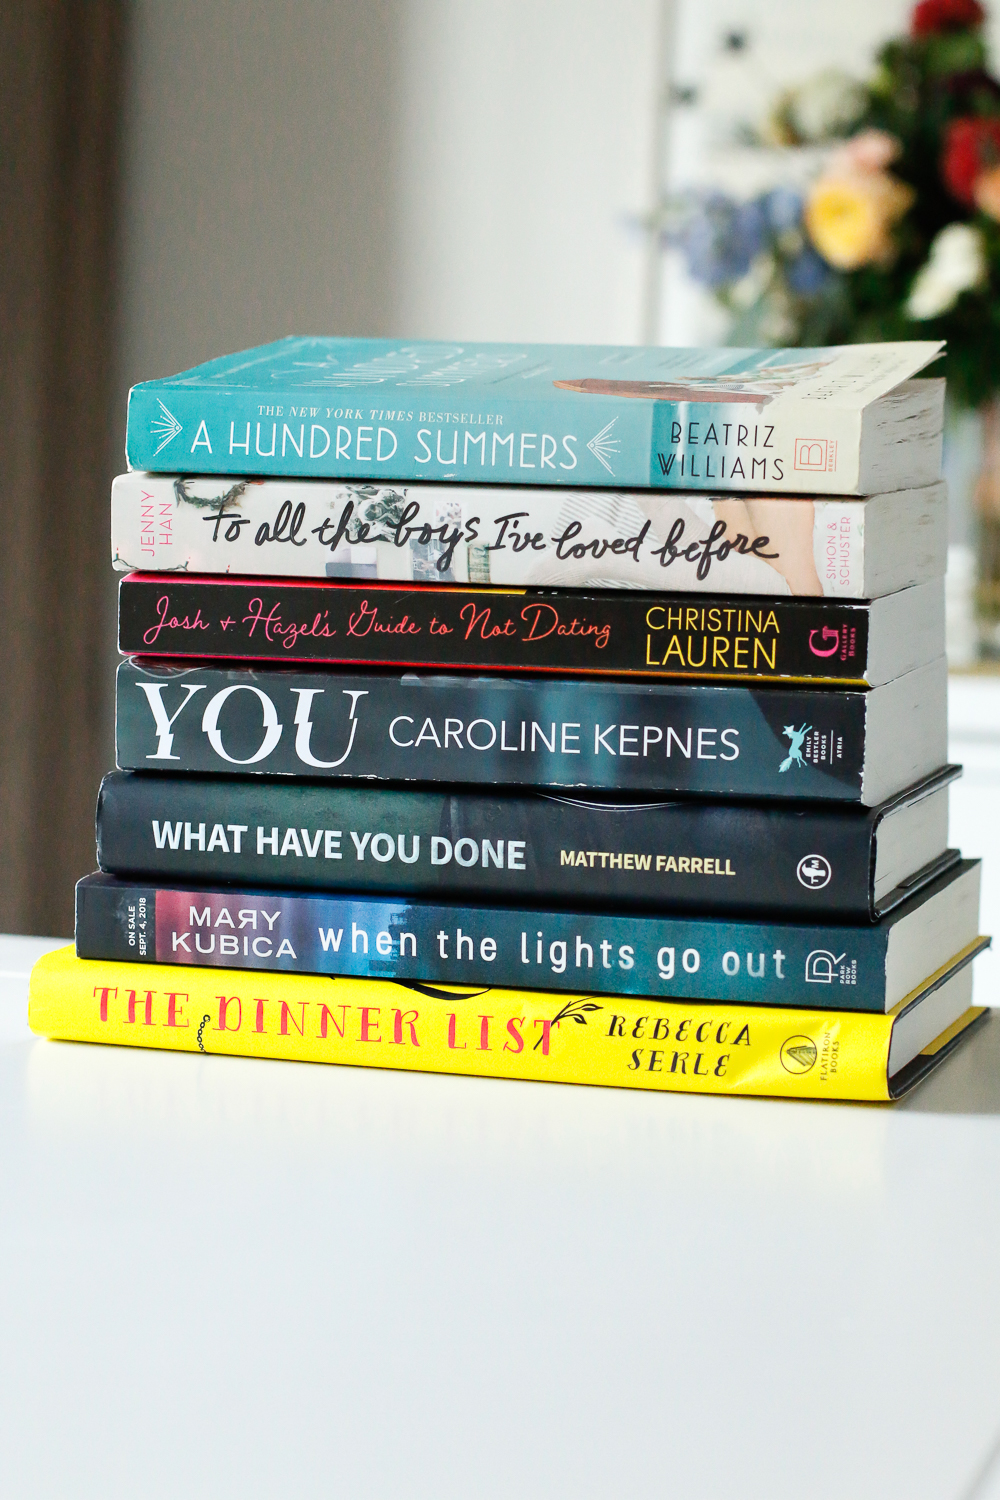 2018 book recommendations from a blogger